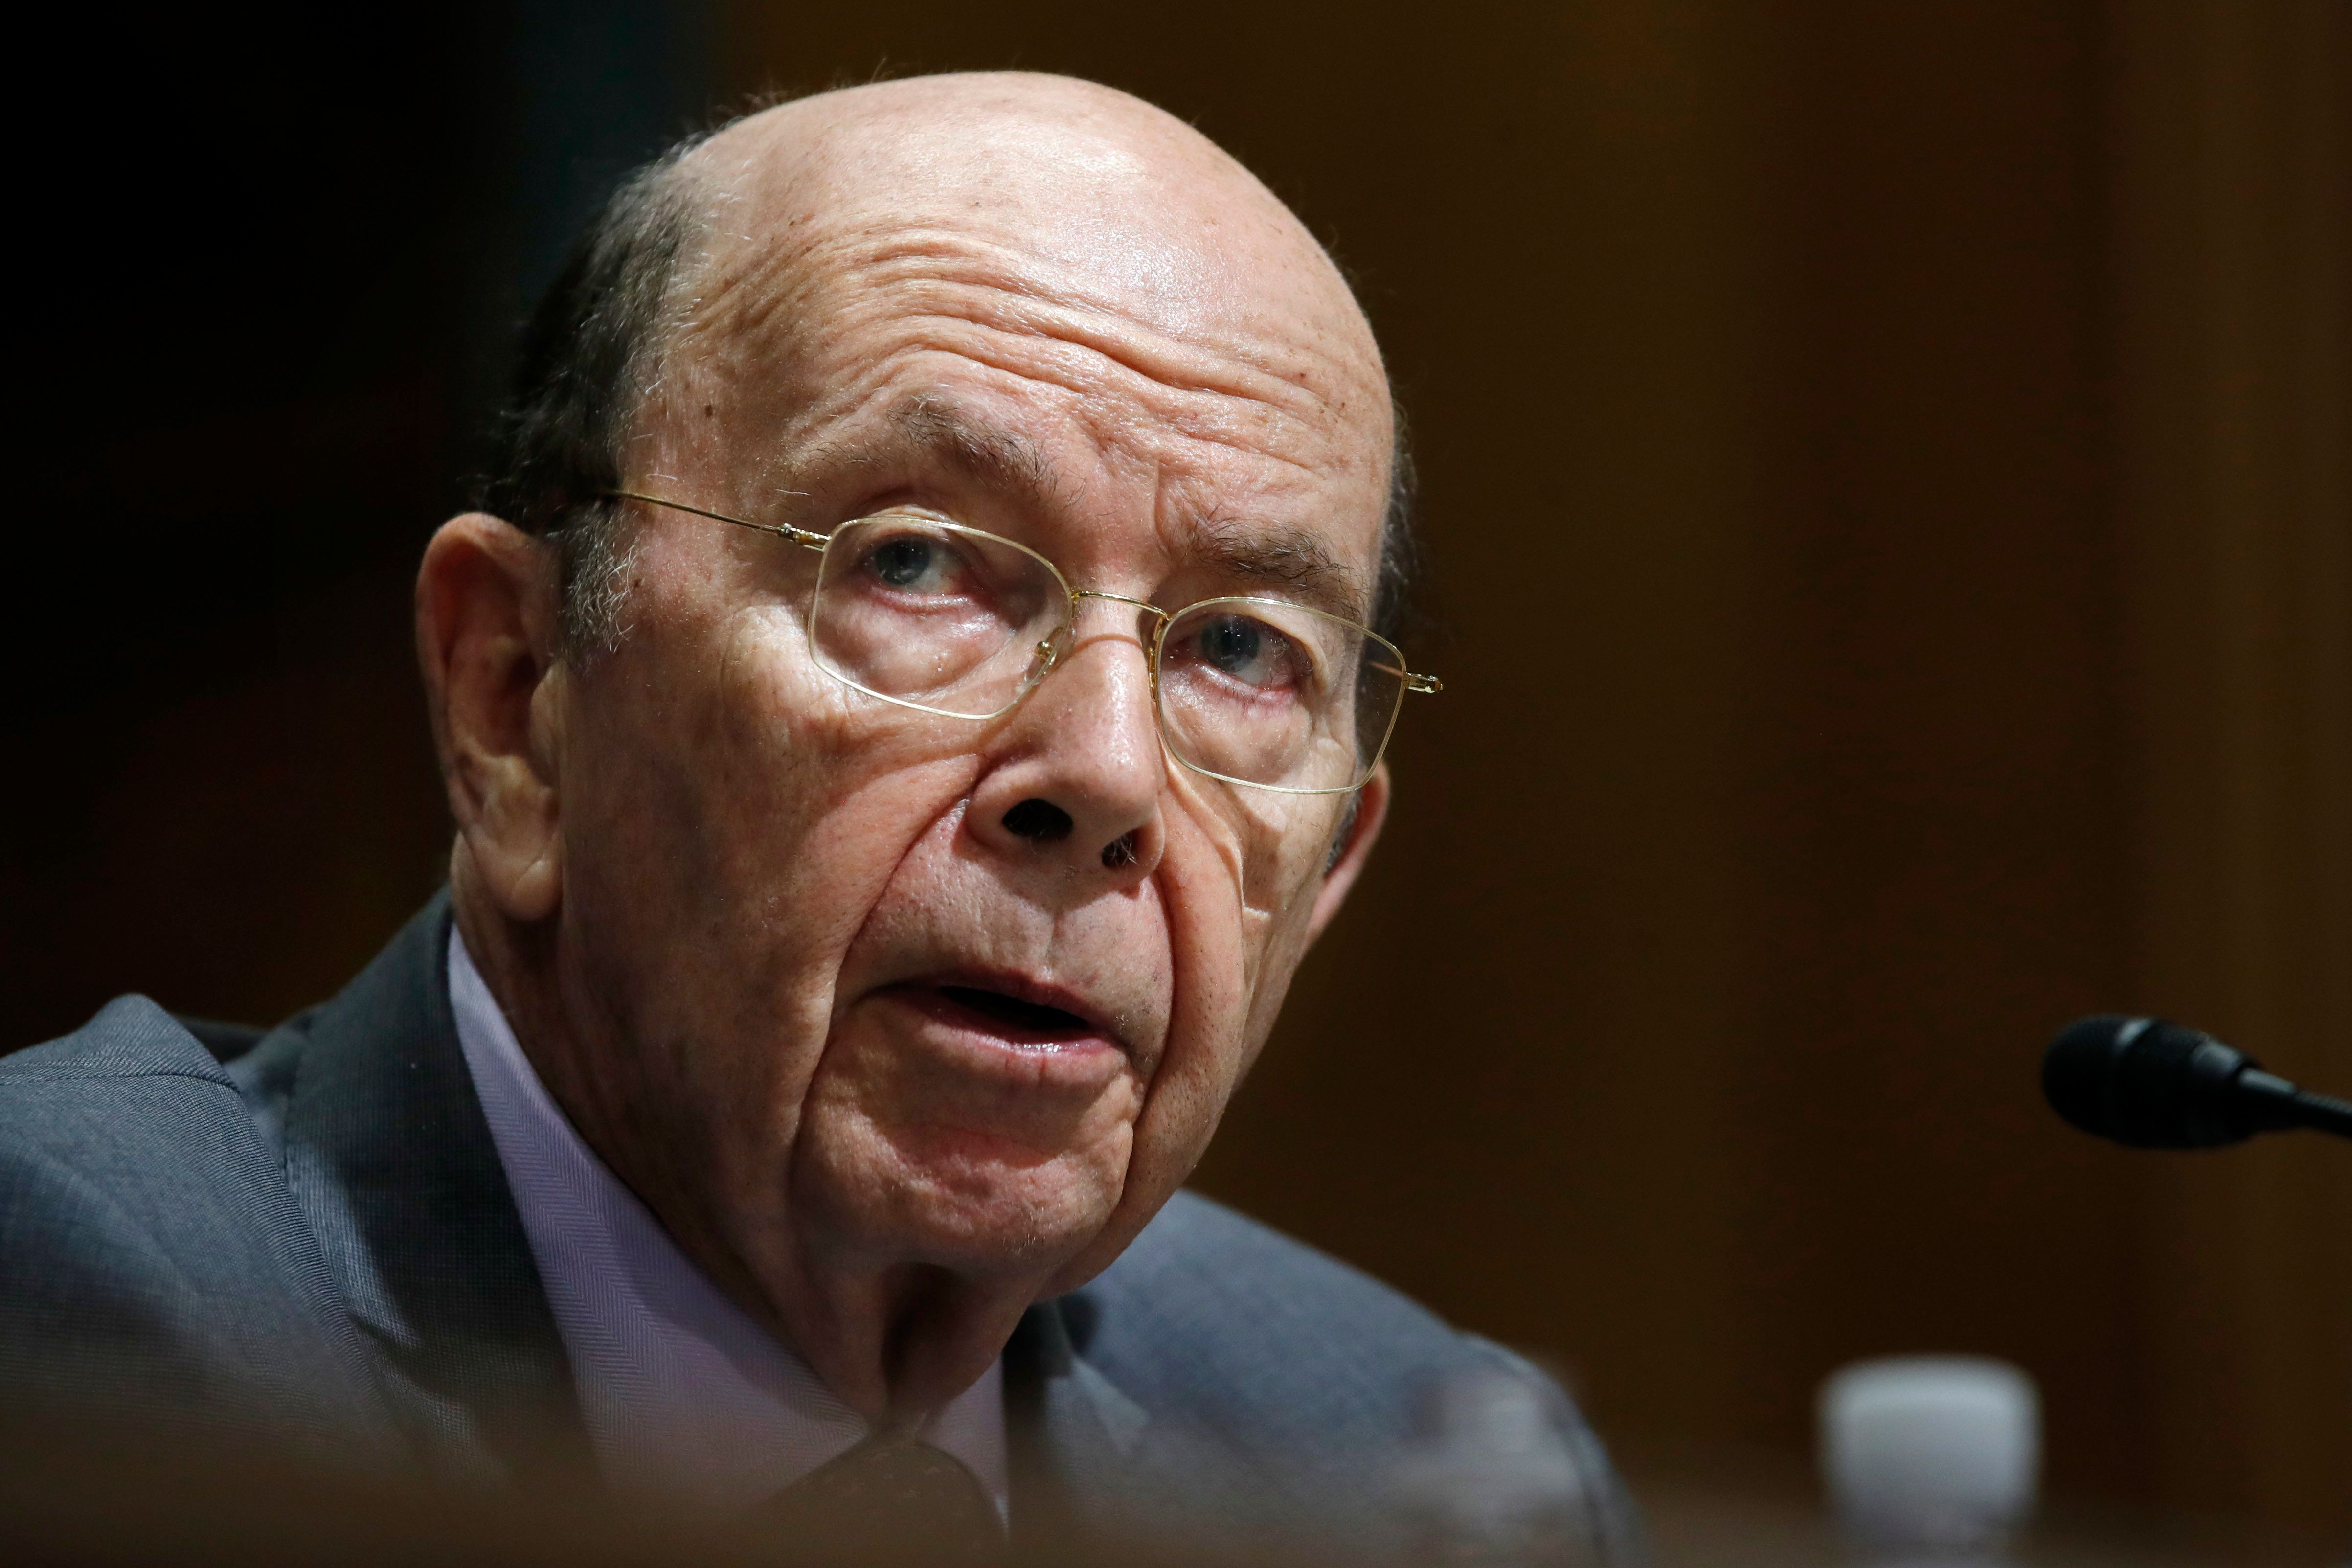 Secretary of Commerce Wilbur Ross speaks during a Senate Finance Committee hearing on tariffs, on Capitol Hill, Wednesday, June 20, 2018 in Washington. (AP Photo/Jacquelyn Martin)